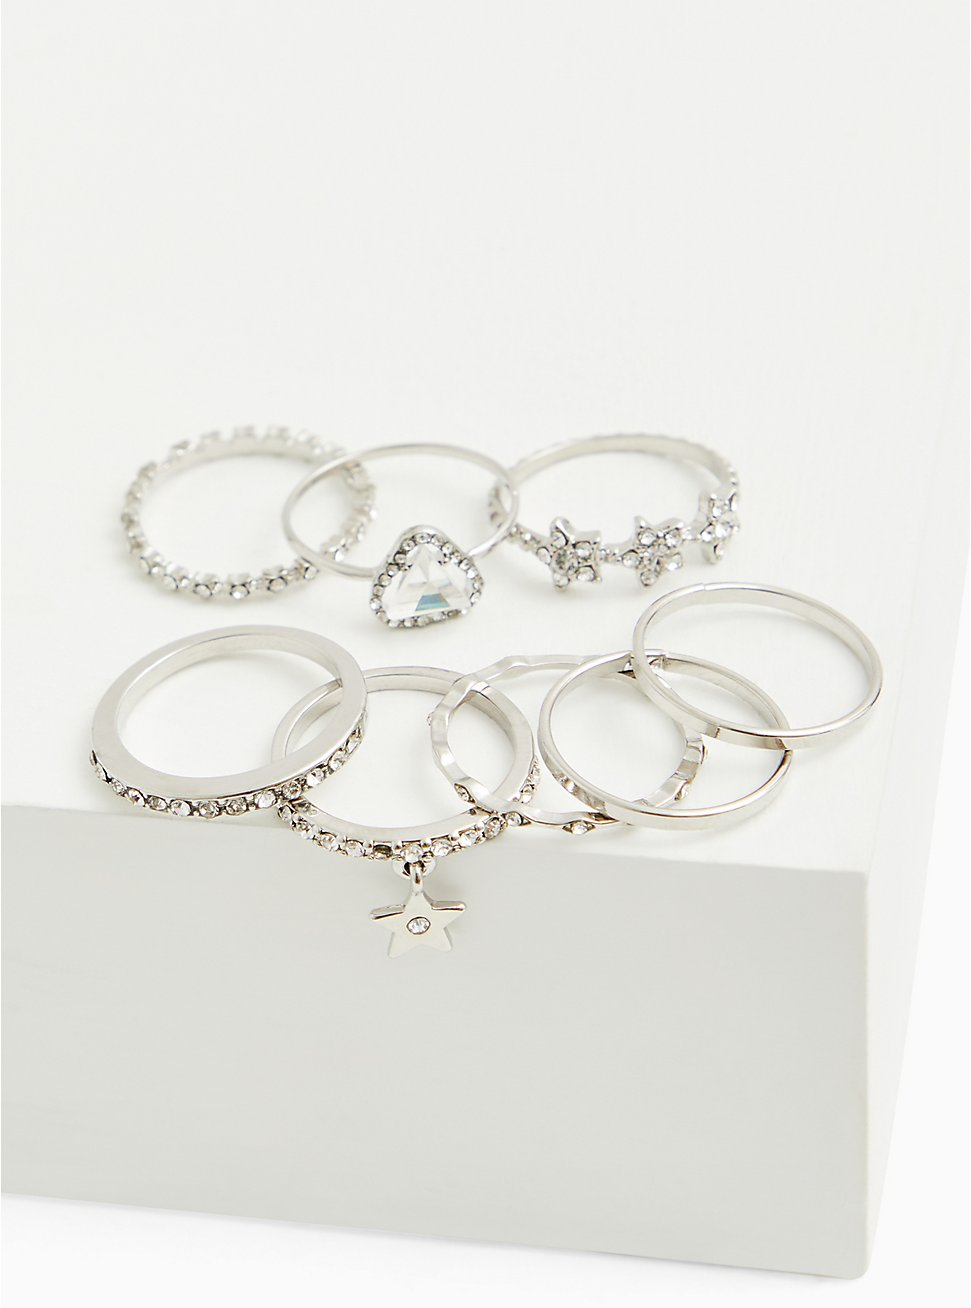 Plus Size Silver-Tone Star Ring Set - Set of 8, MULTI, hi-res